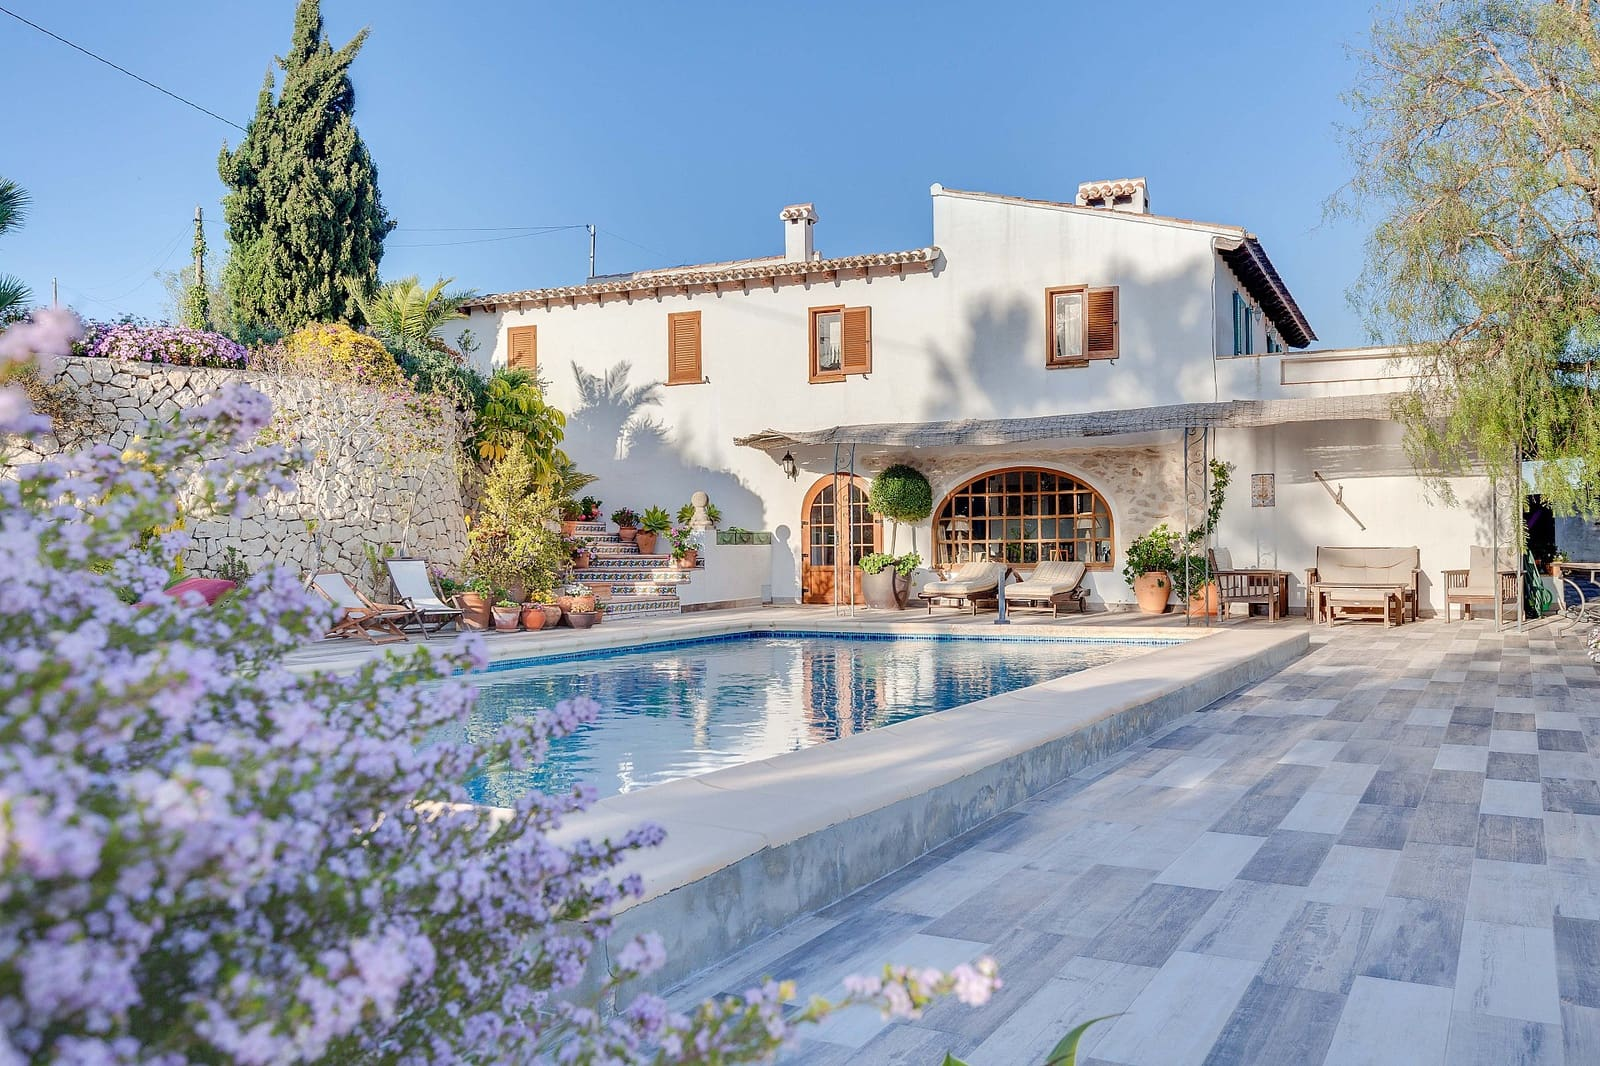 5 bedroom Finca/Country House for sale in Teulada with pool - € 1,700,000 (Ref: 5235735)